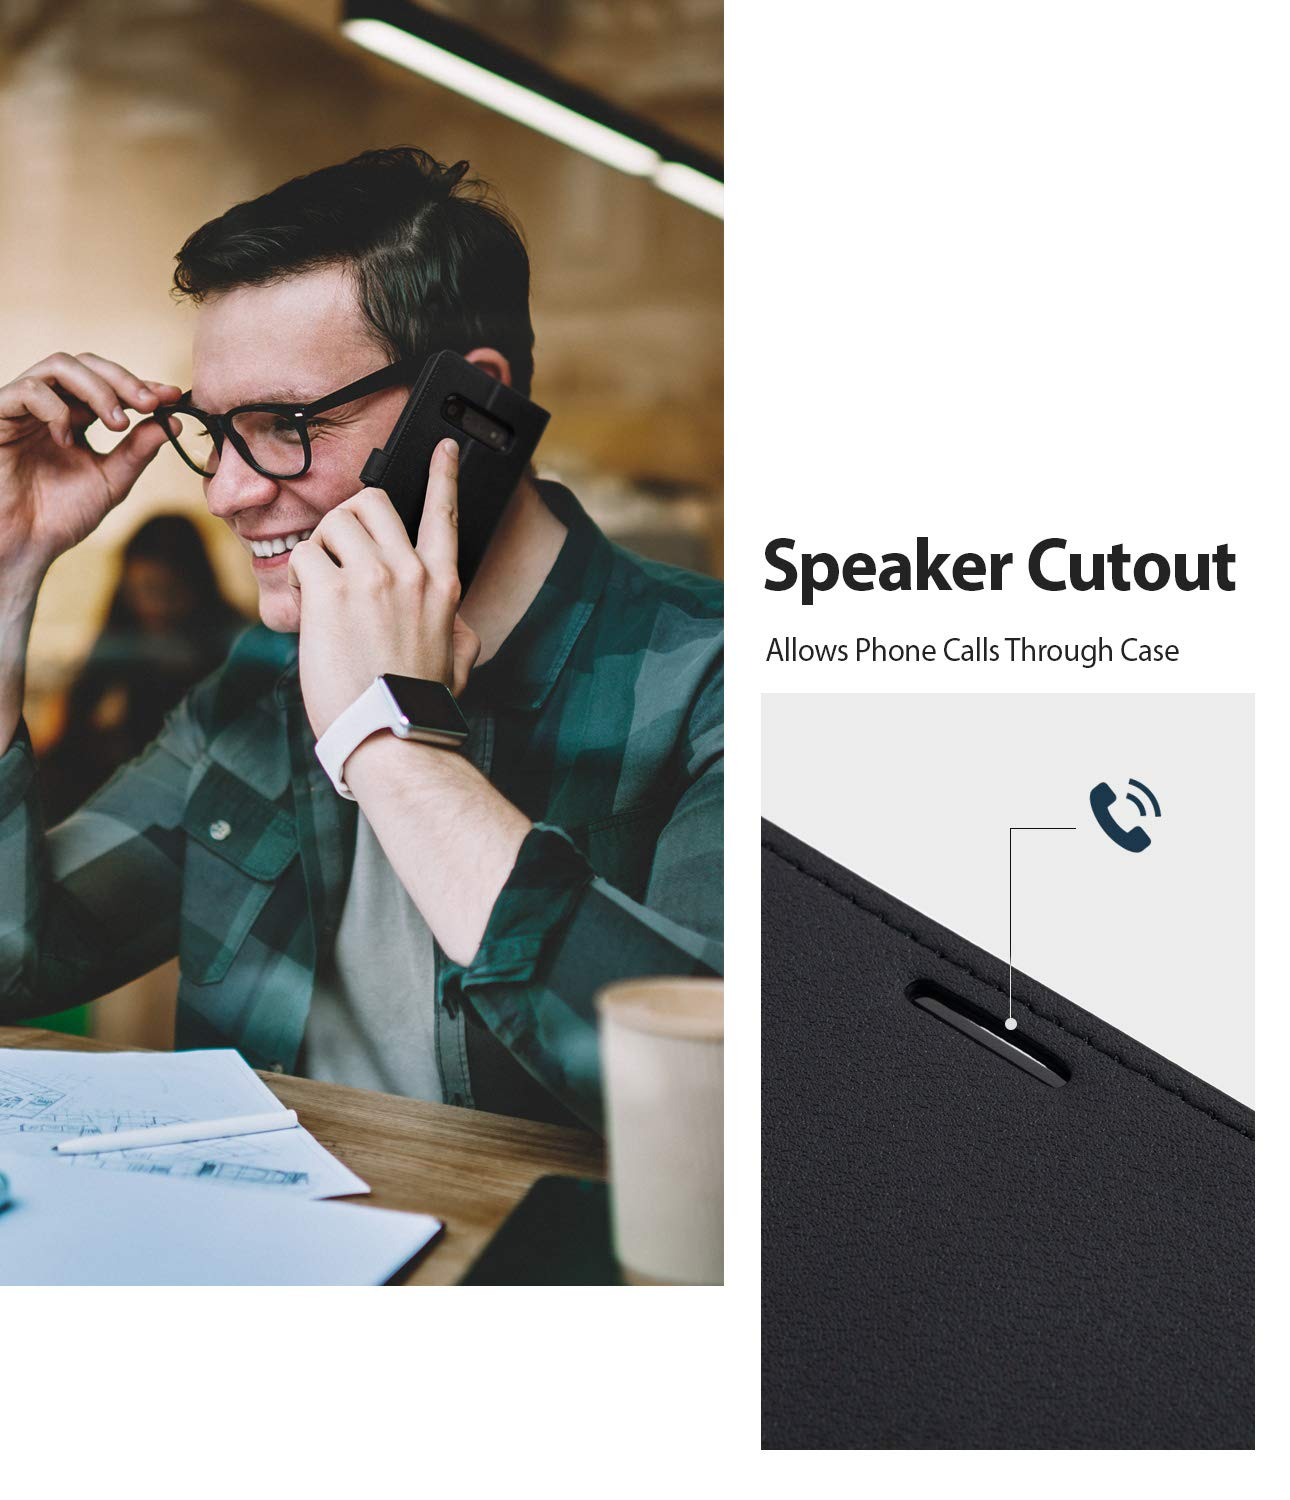 speaker cutout allows phone calls trough case